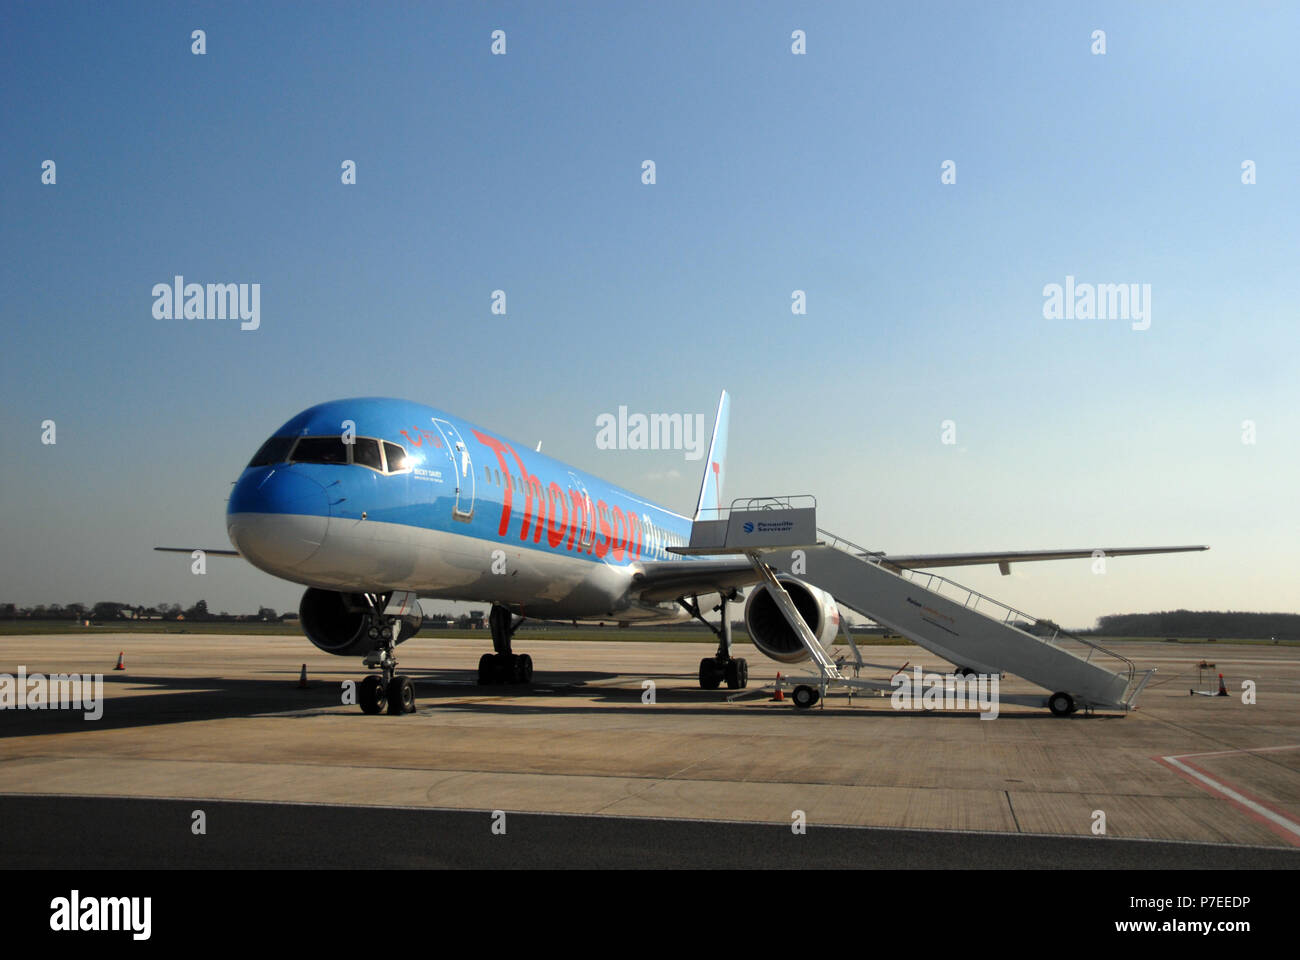 Thomson jet plane on airside tarmac at the Doncaster Sheffield Airport, formerly named Robin Hood Airport Doncaster Sheffield, - Stock Image